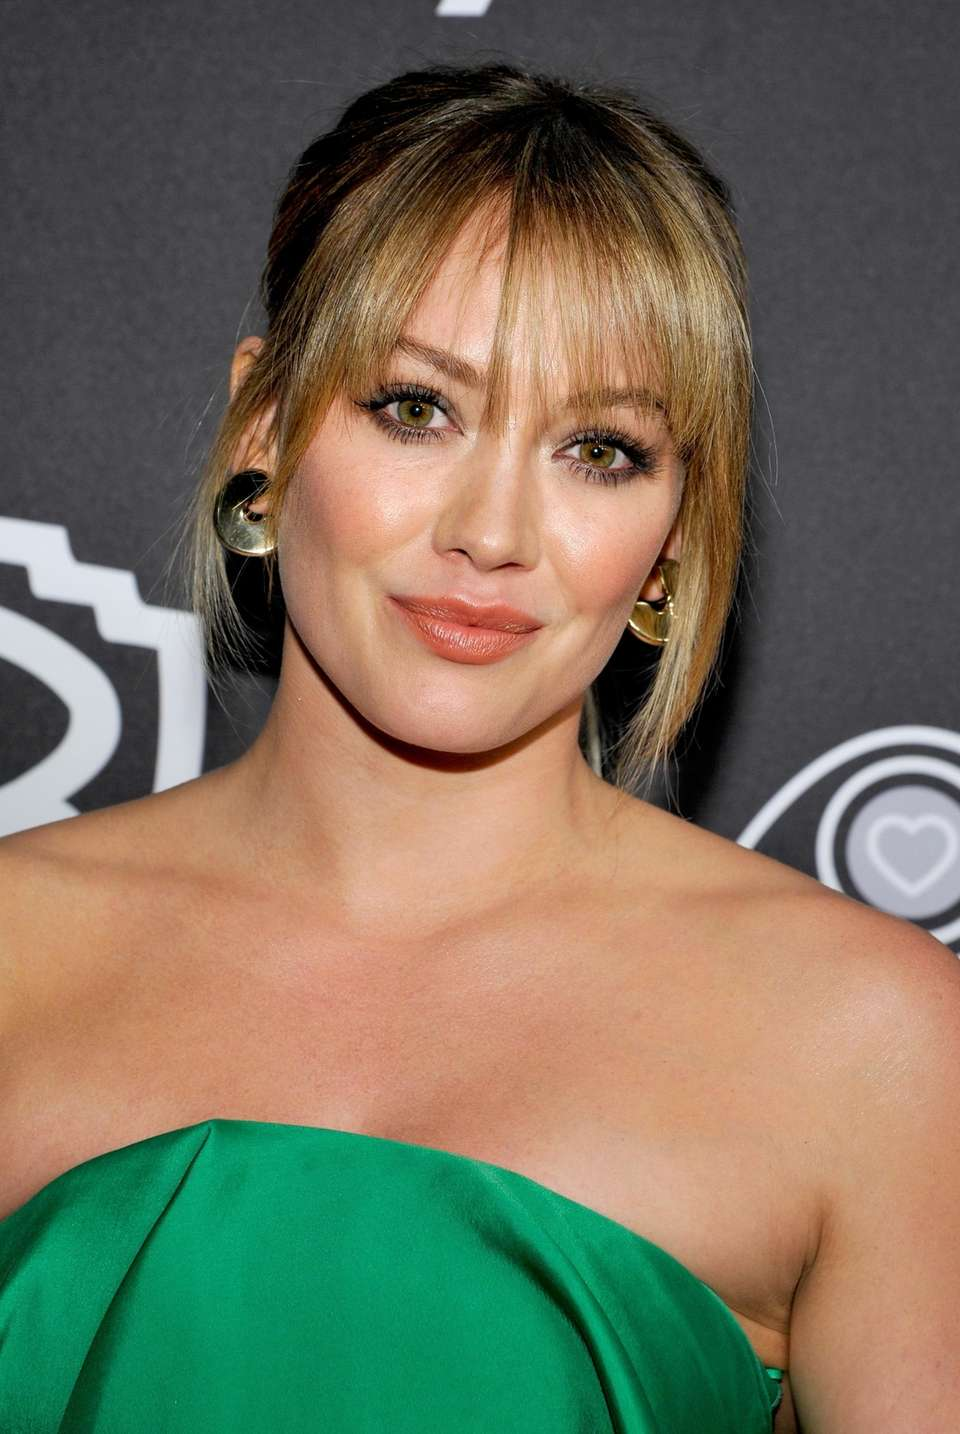 Actress/singer Hilary Duff attends The 2017 InStyle and